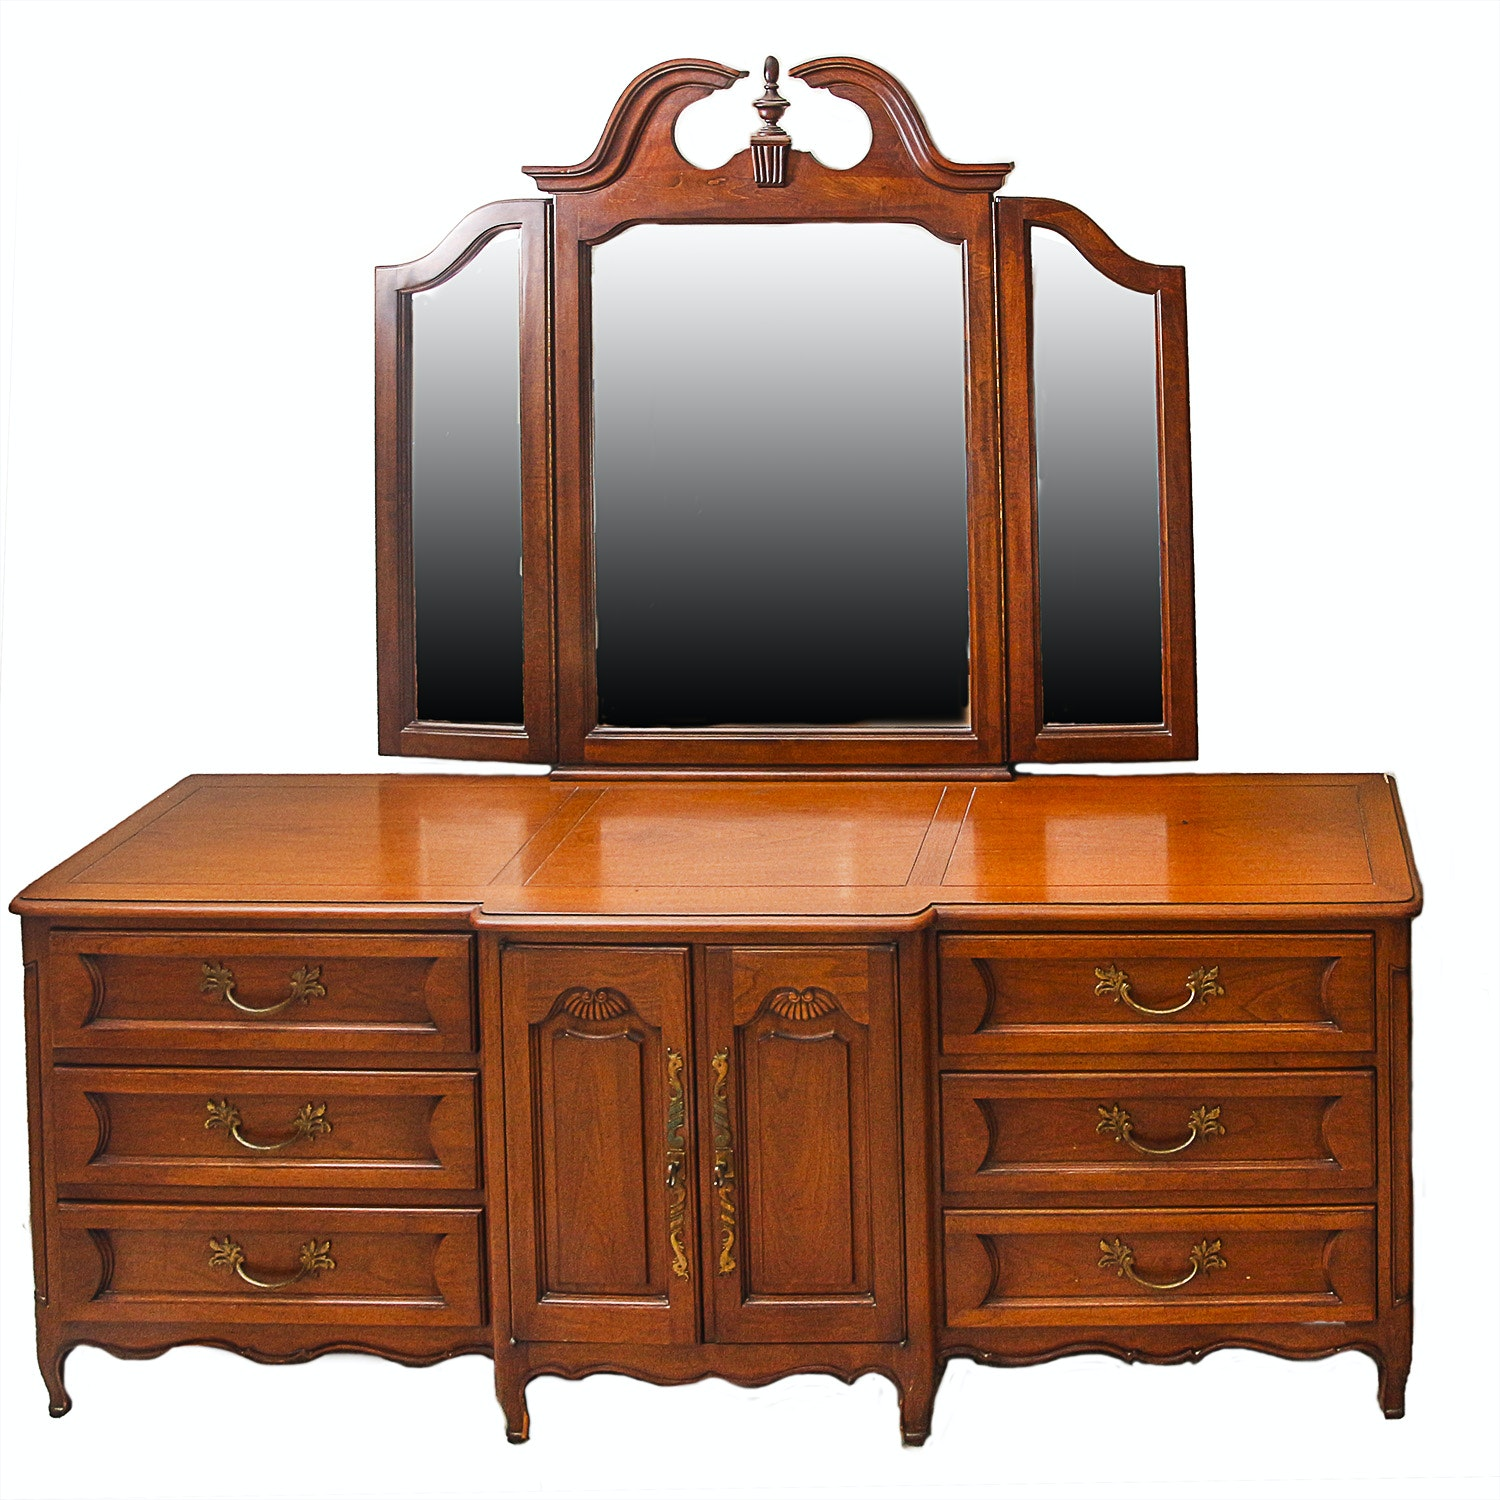 Attirant Vintage Louis XV Style Dresser By John Stuart Inc. With Mirror ...